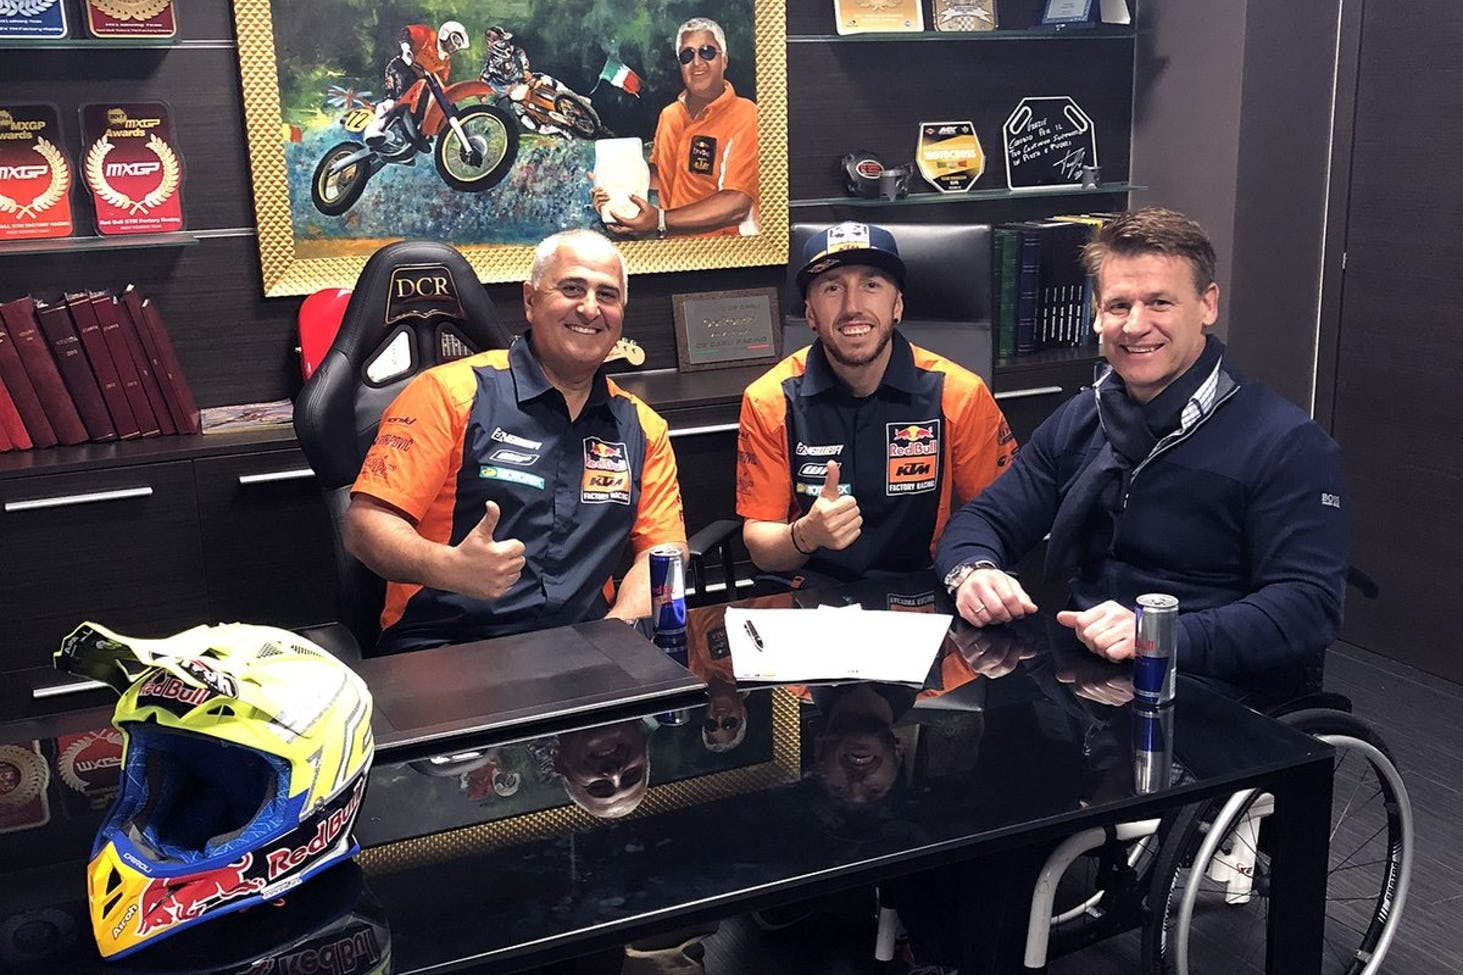 Antonio Cairoli Extends Contract with Red Bull KTM MXGP